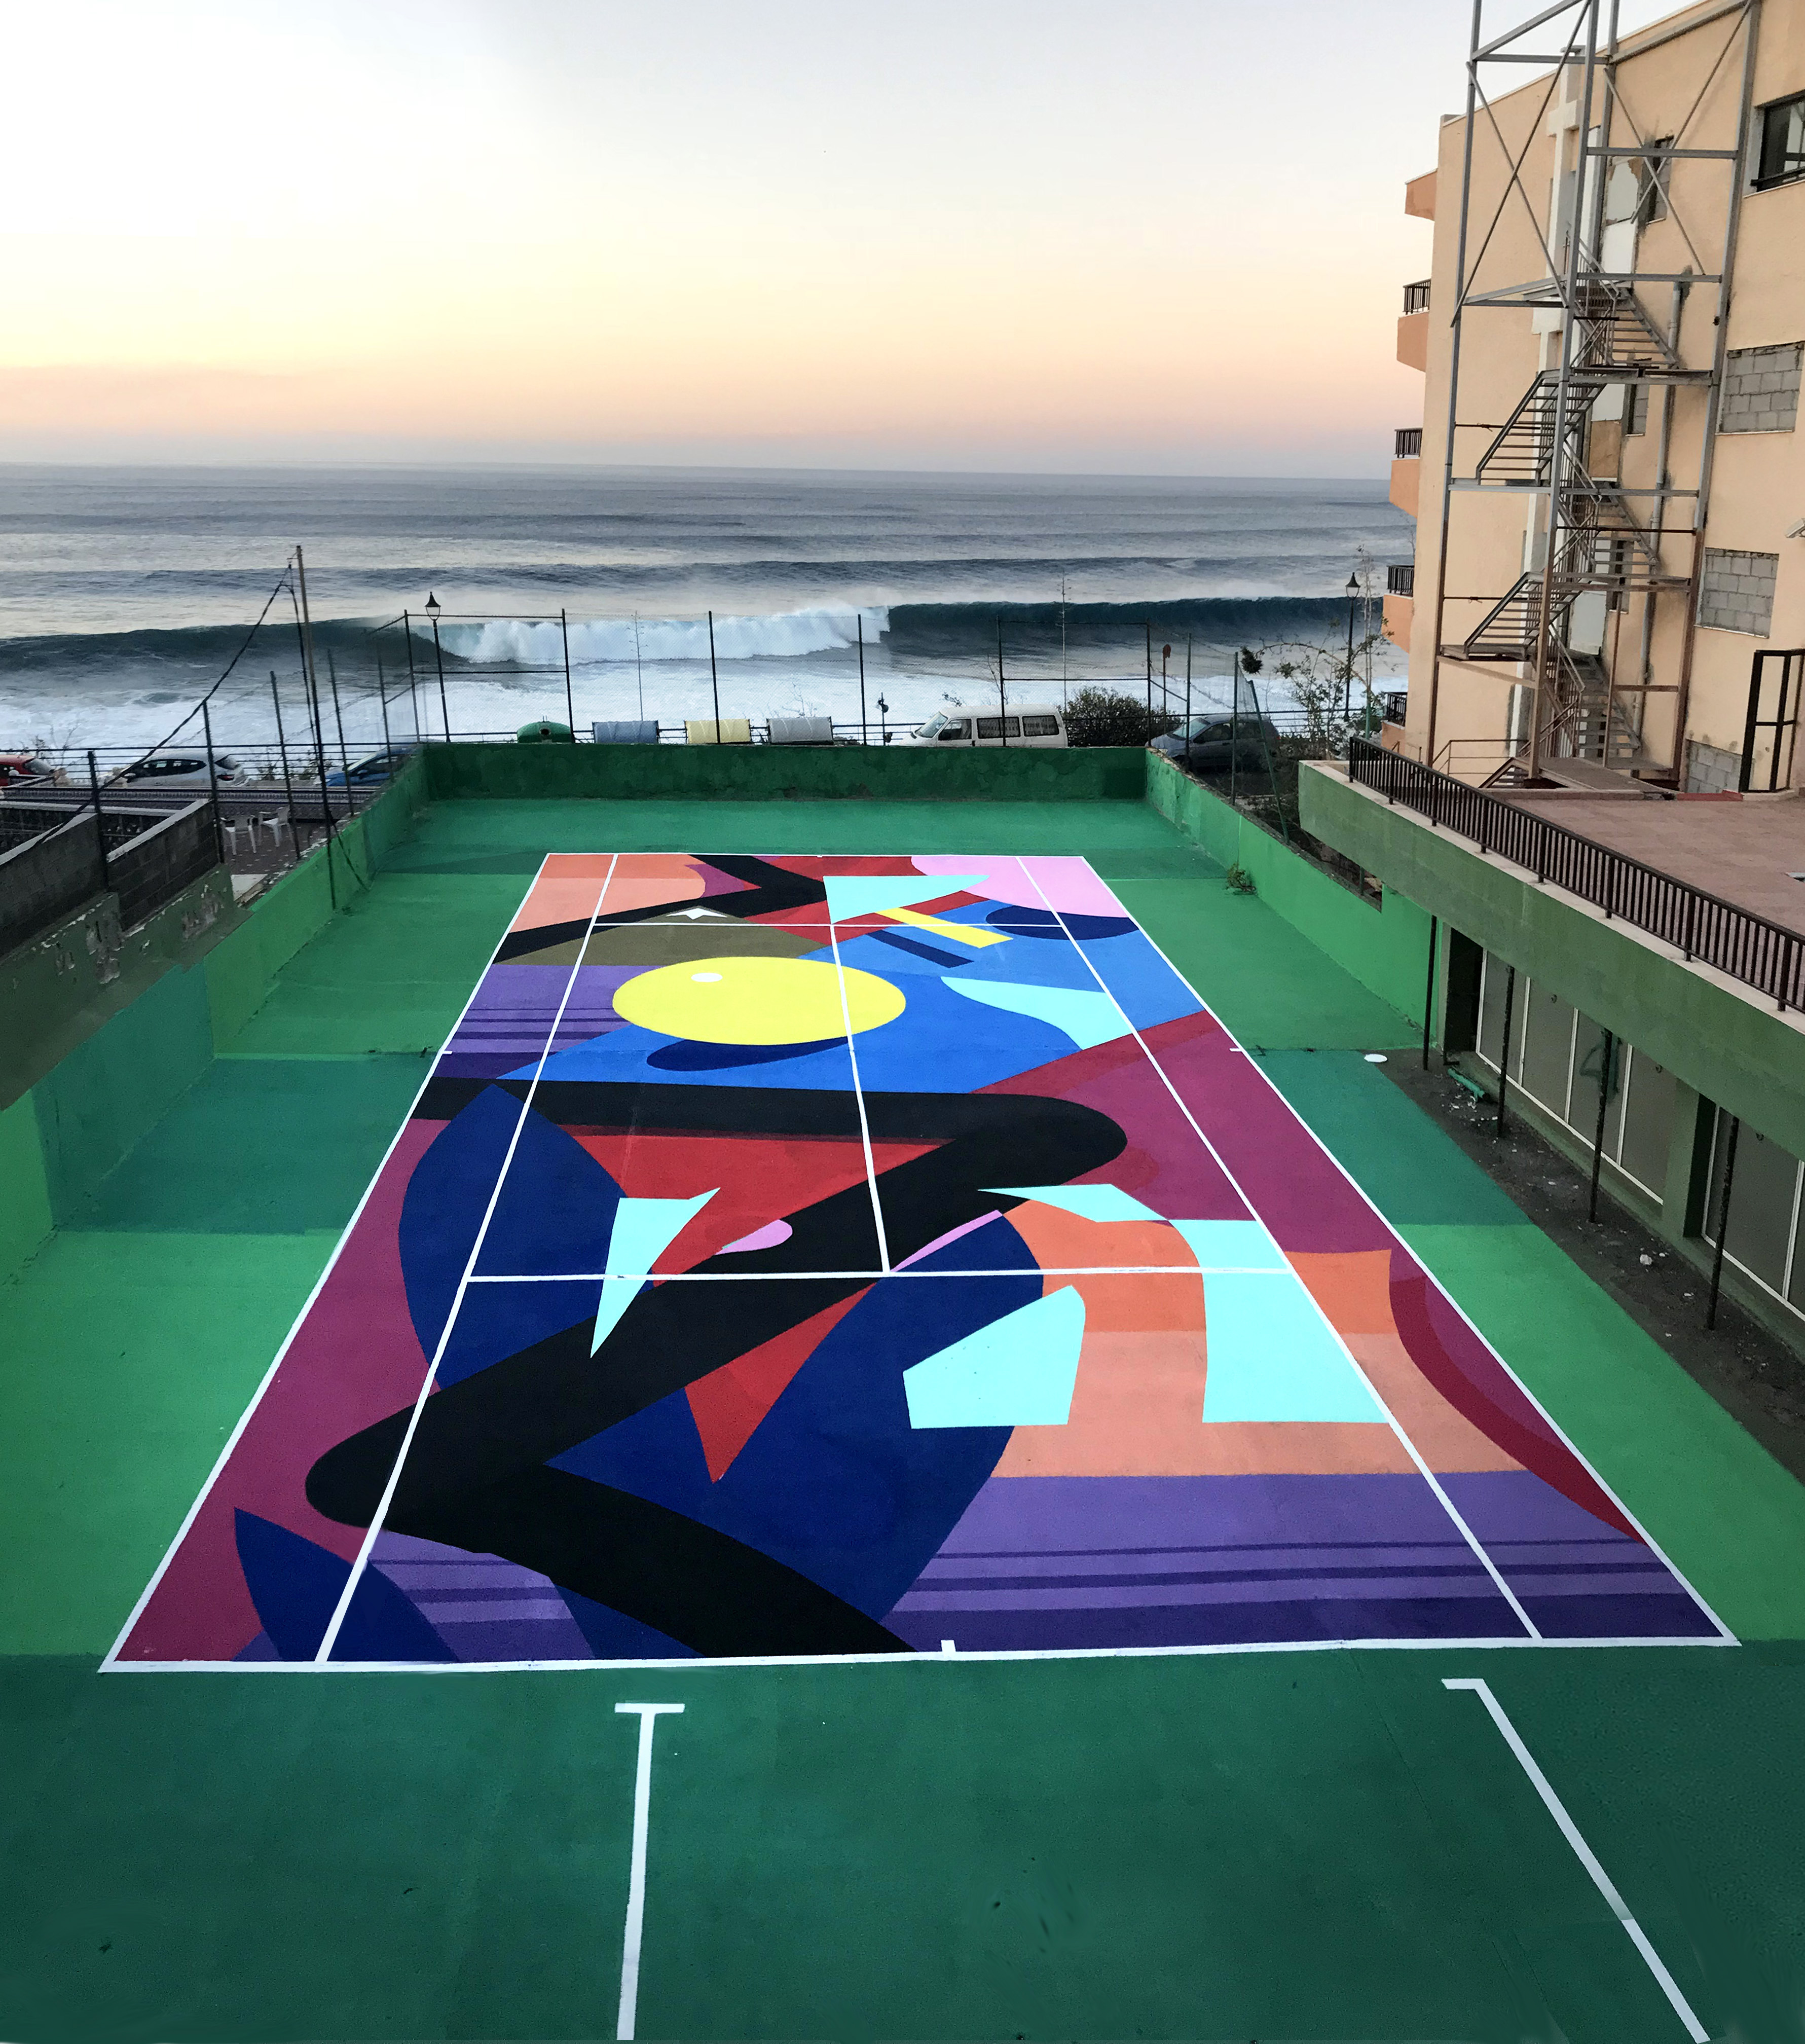 Court – Bajamar – Tenerife